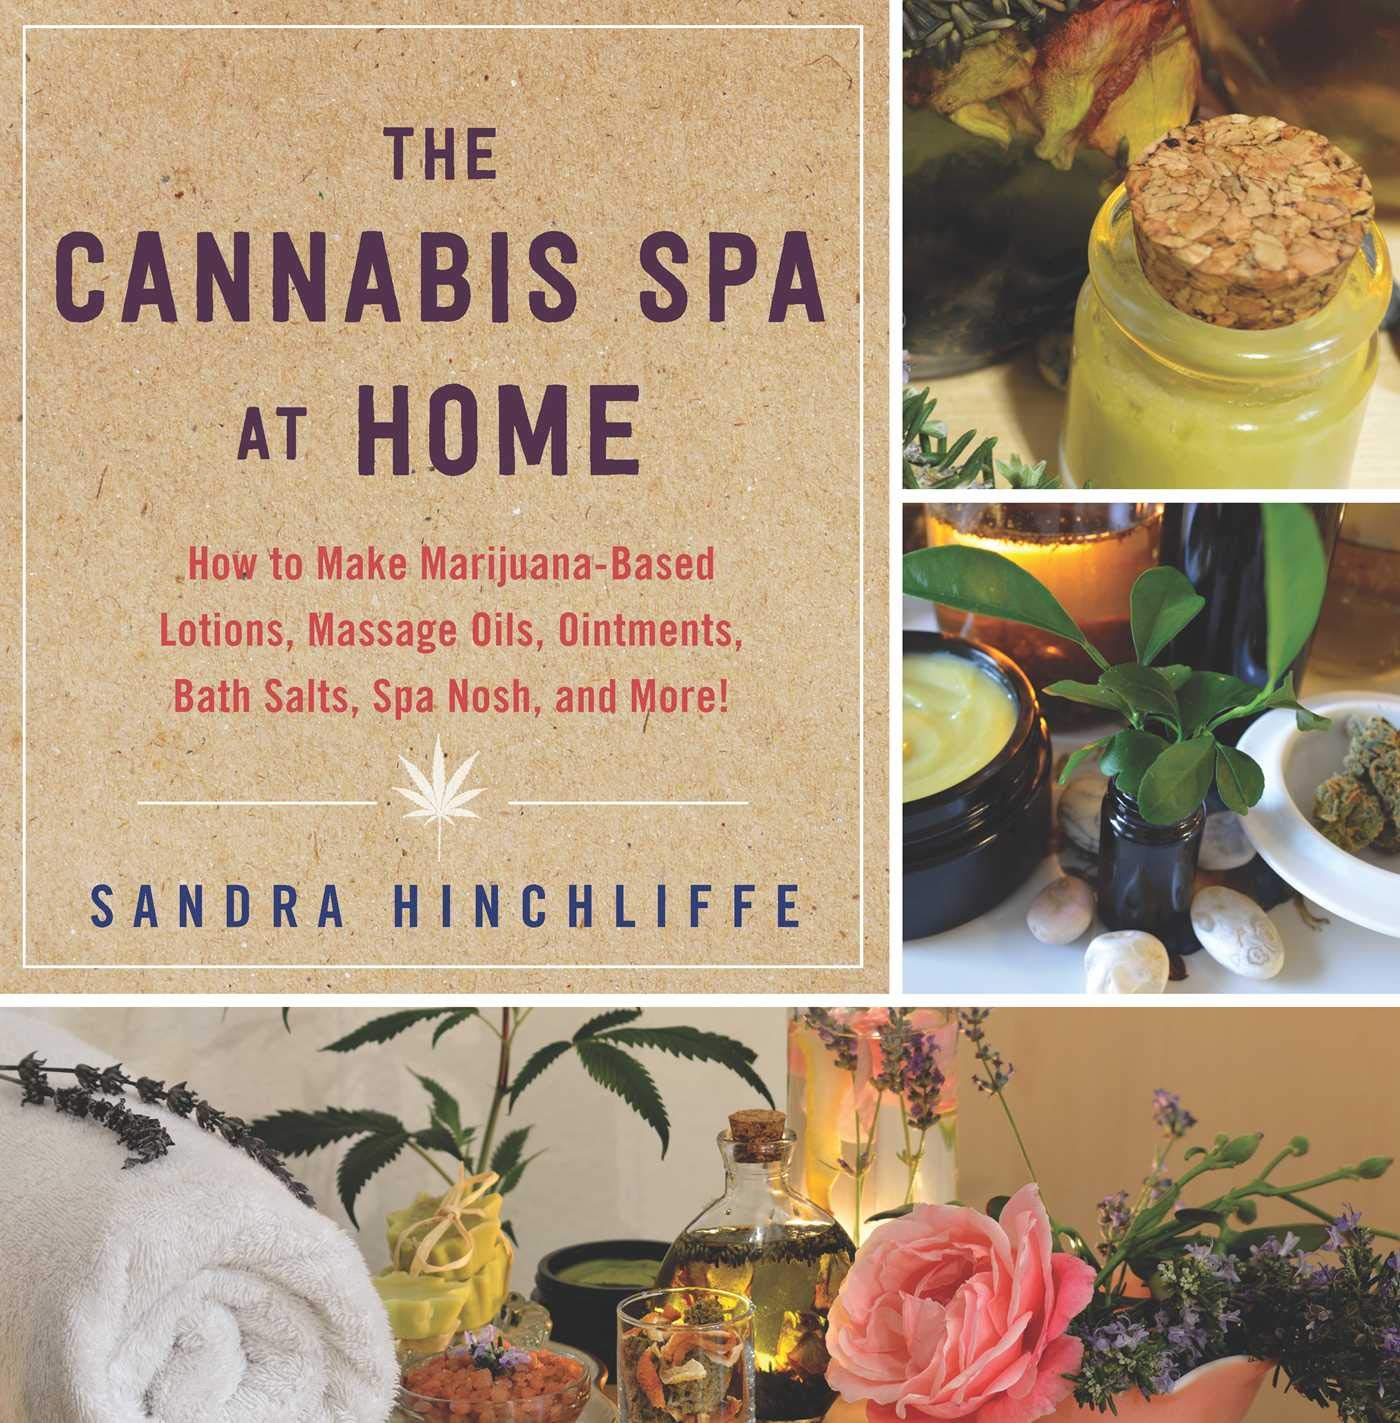 The Cannabis Spa at Home: How to Make Marijuana-Infused Lotions, Massage Oils, Ointments, Bath Salts, Spa Nosh, and More by Skyhorse